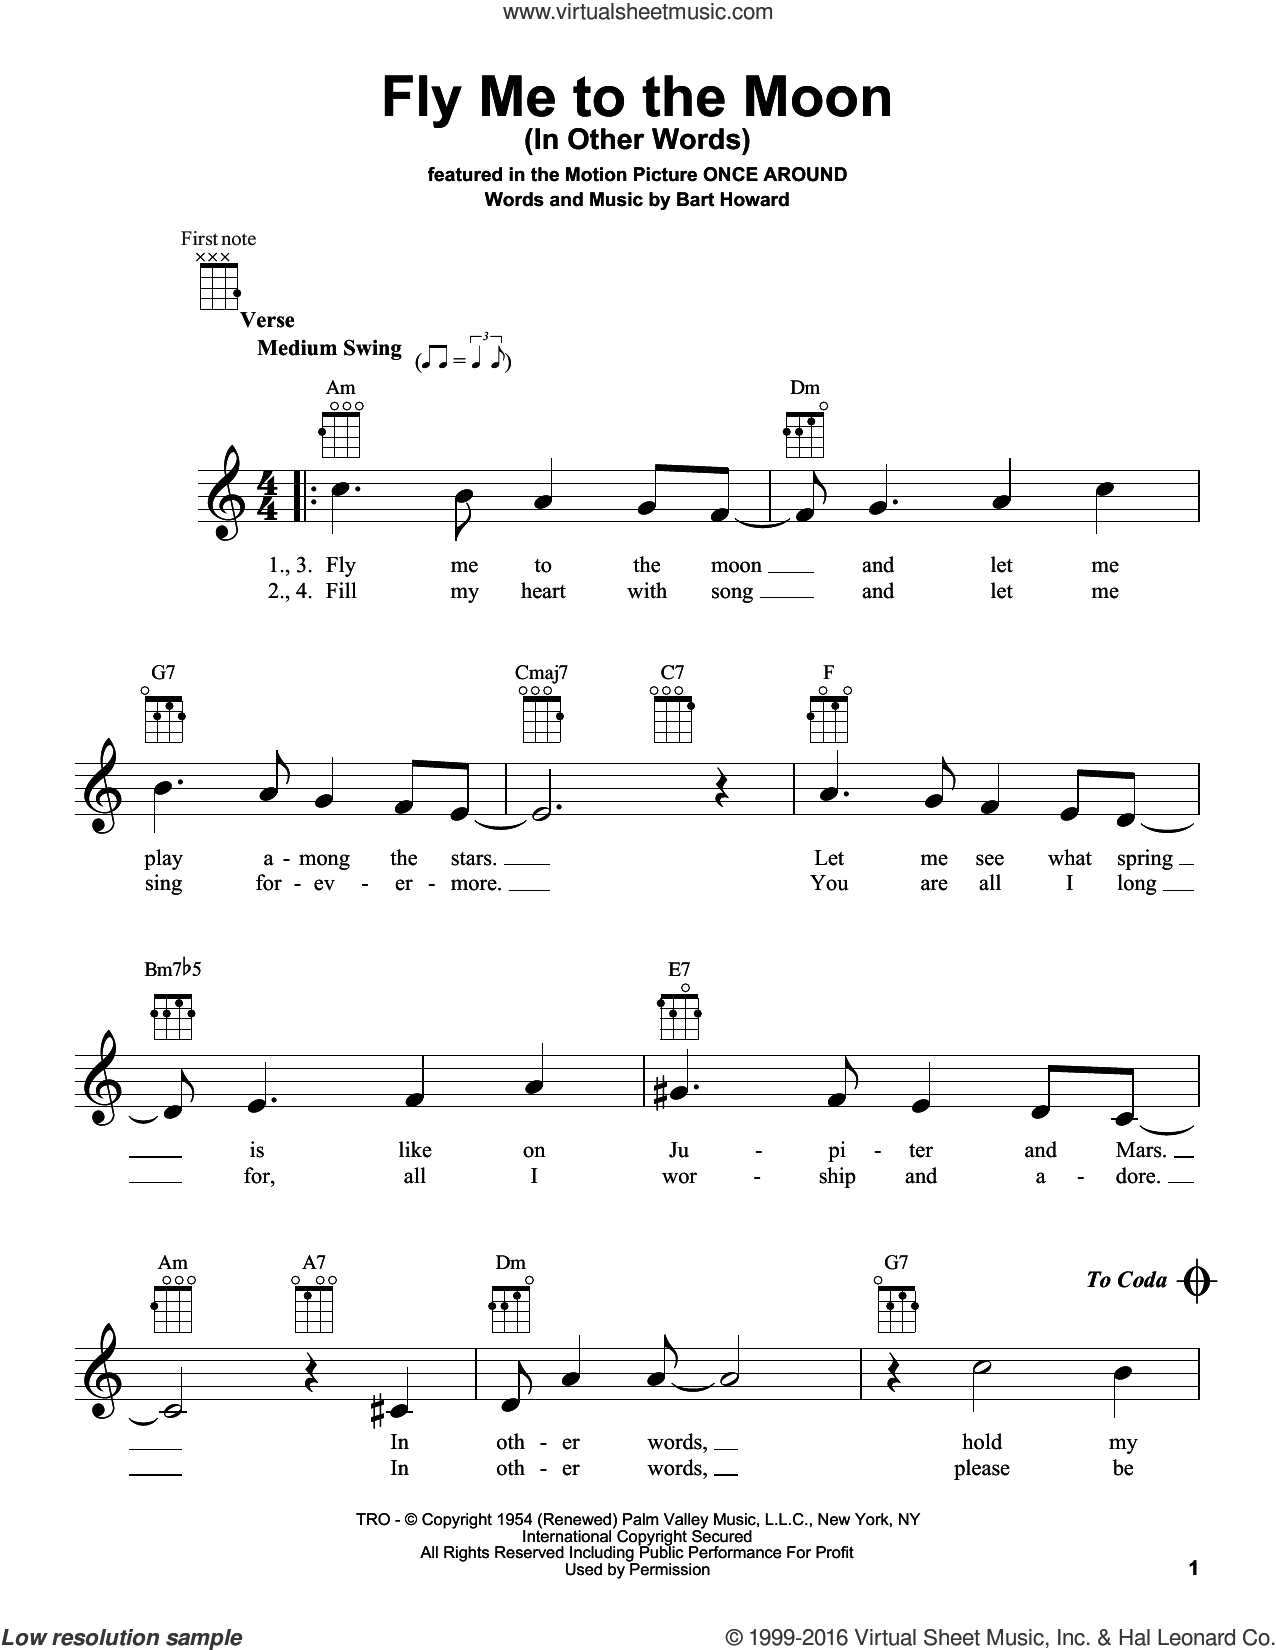 Fly Me To The Moon (In Other Words) sheet music for ukulele by Bart Howard